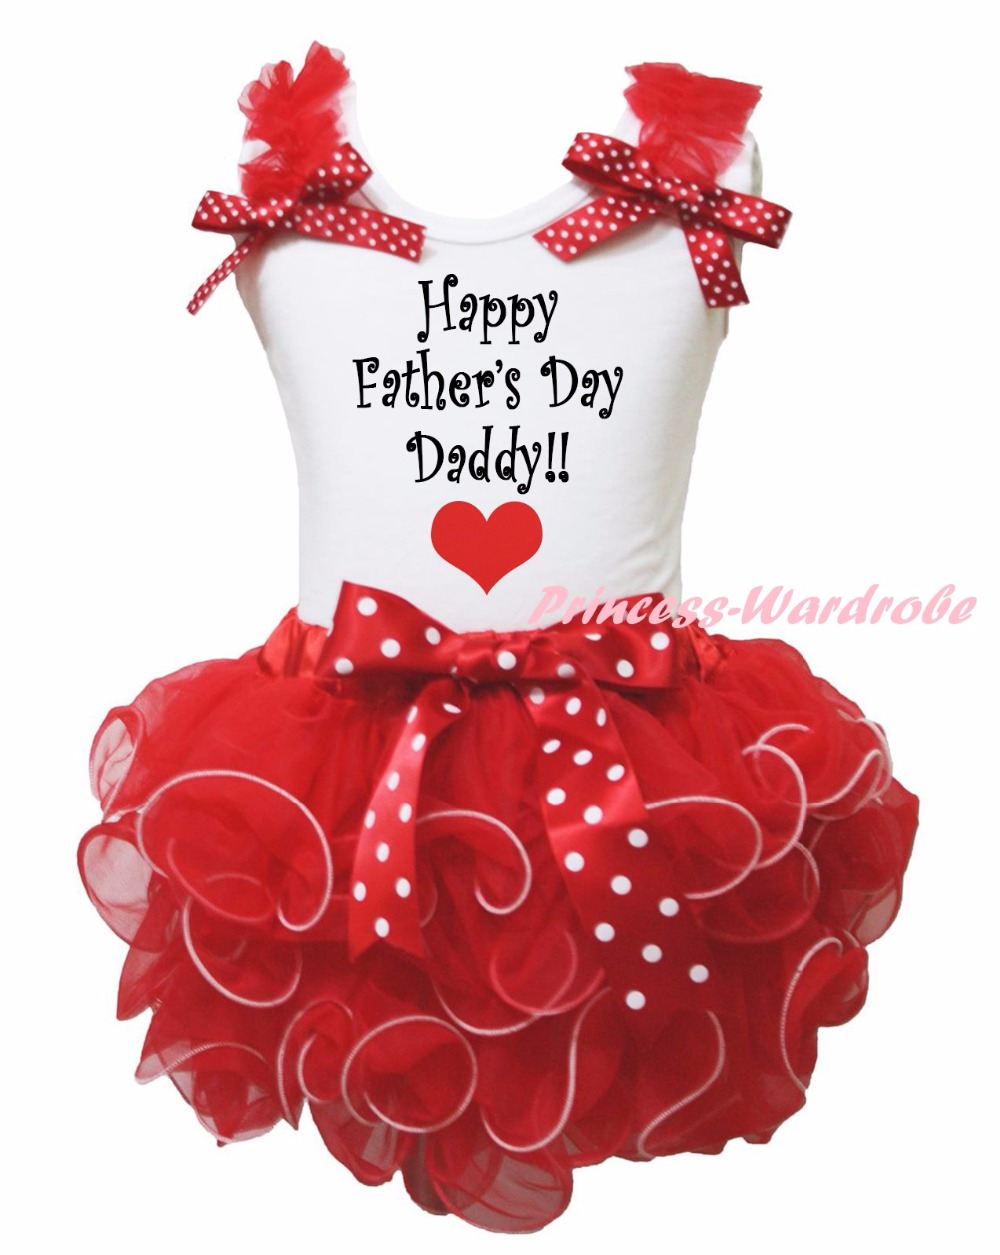 Happy Father's I love Day Daddy White Shirt Red Ribbon Petal Baby GirlSkirt Set Nb-8y LKPO0034 white cotton shirt white blue red star petal skirt girl outfit set dress my 1st 6th 4th of july costume nb 8y lkpo0037